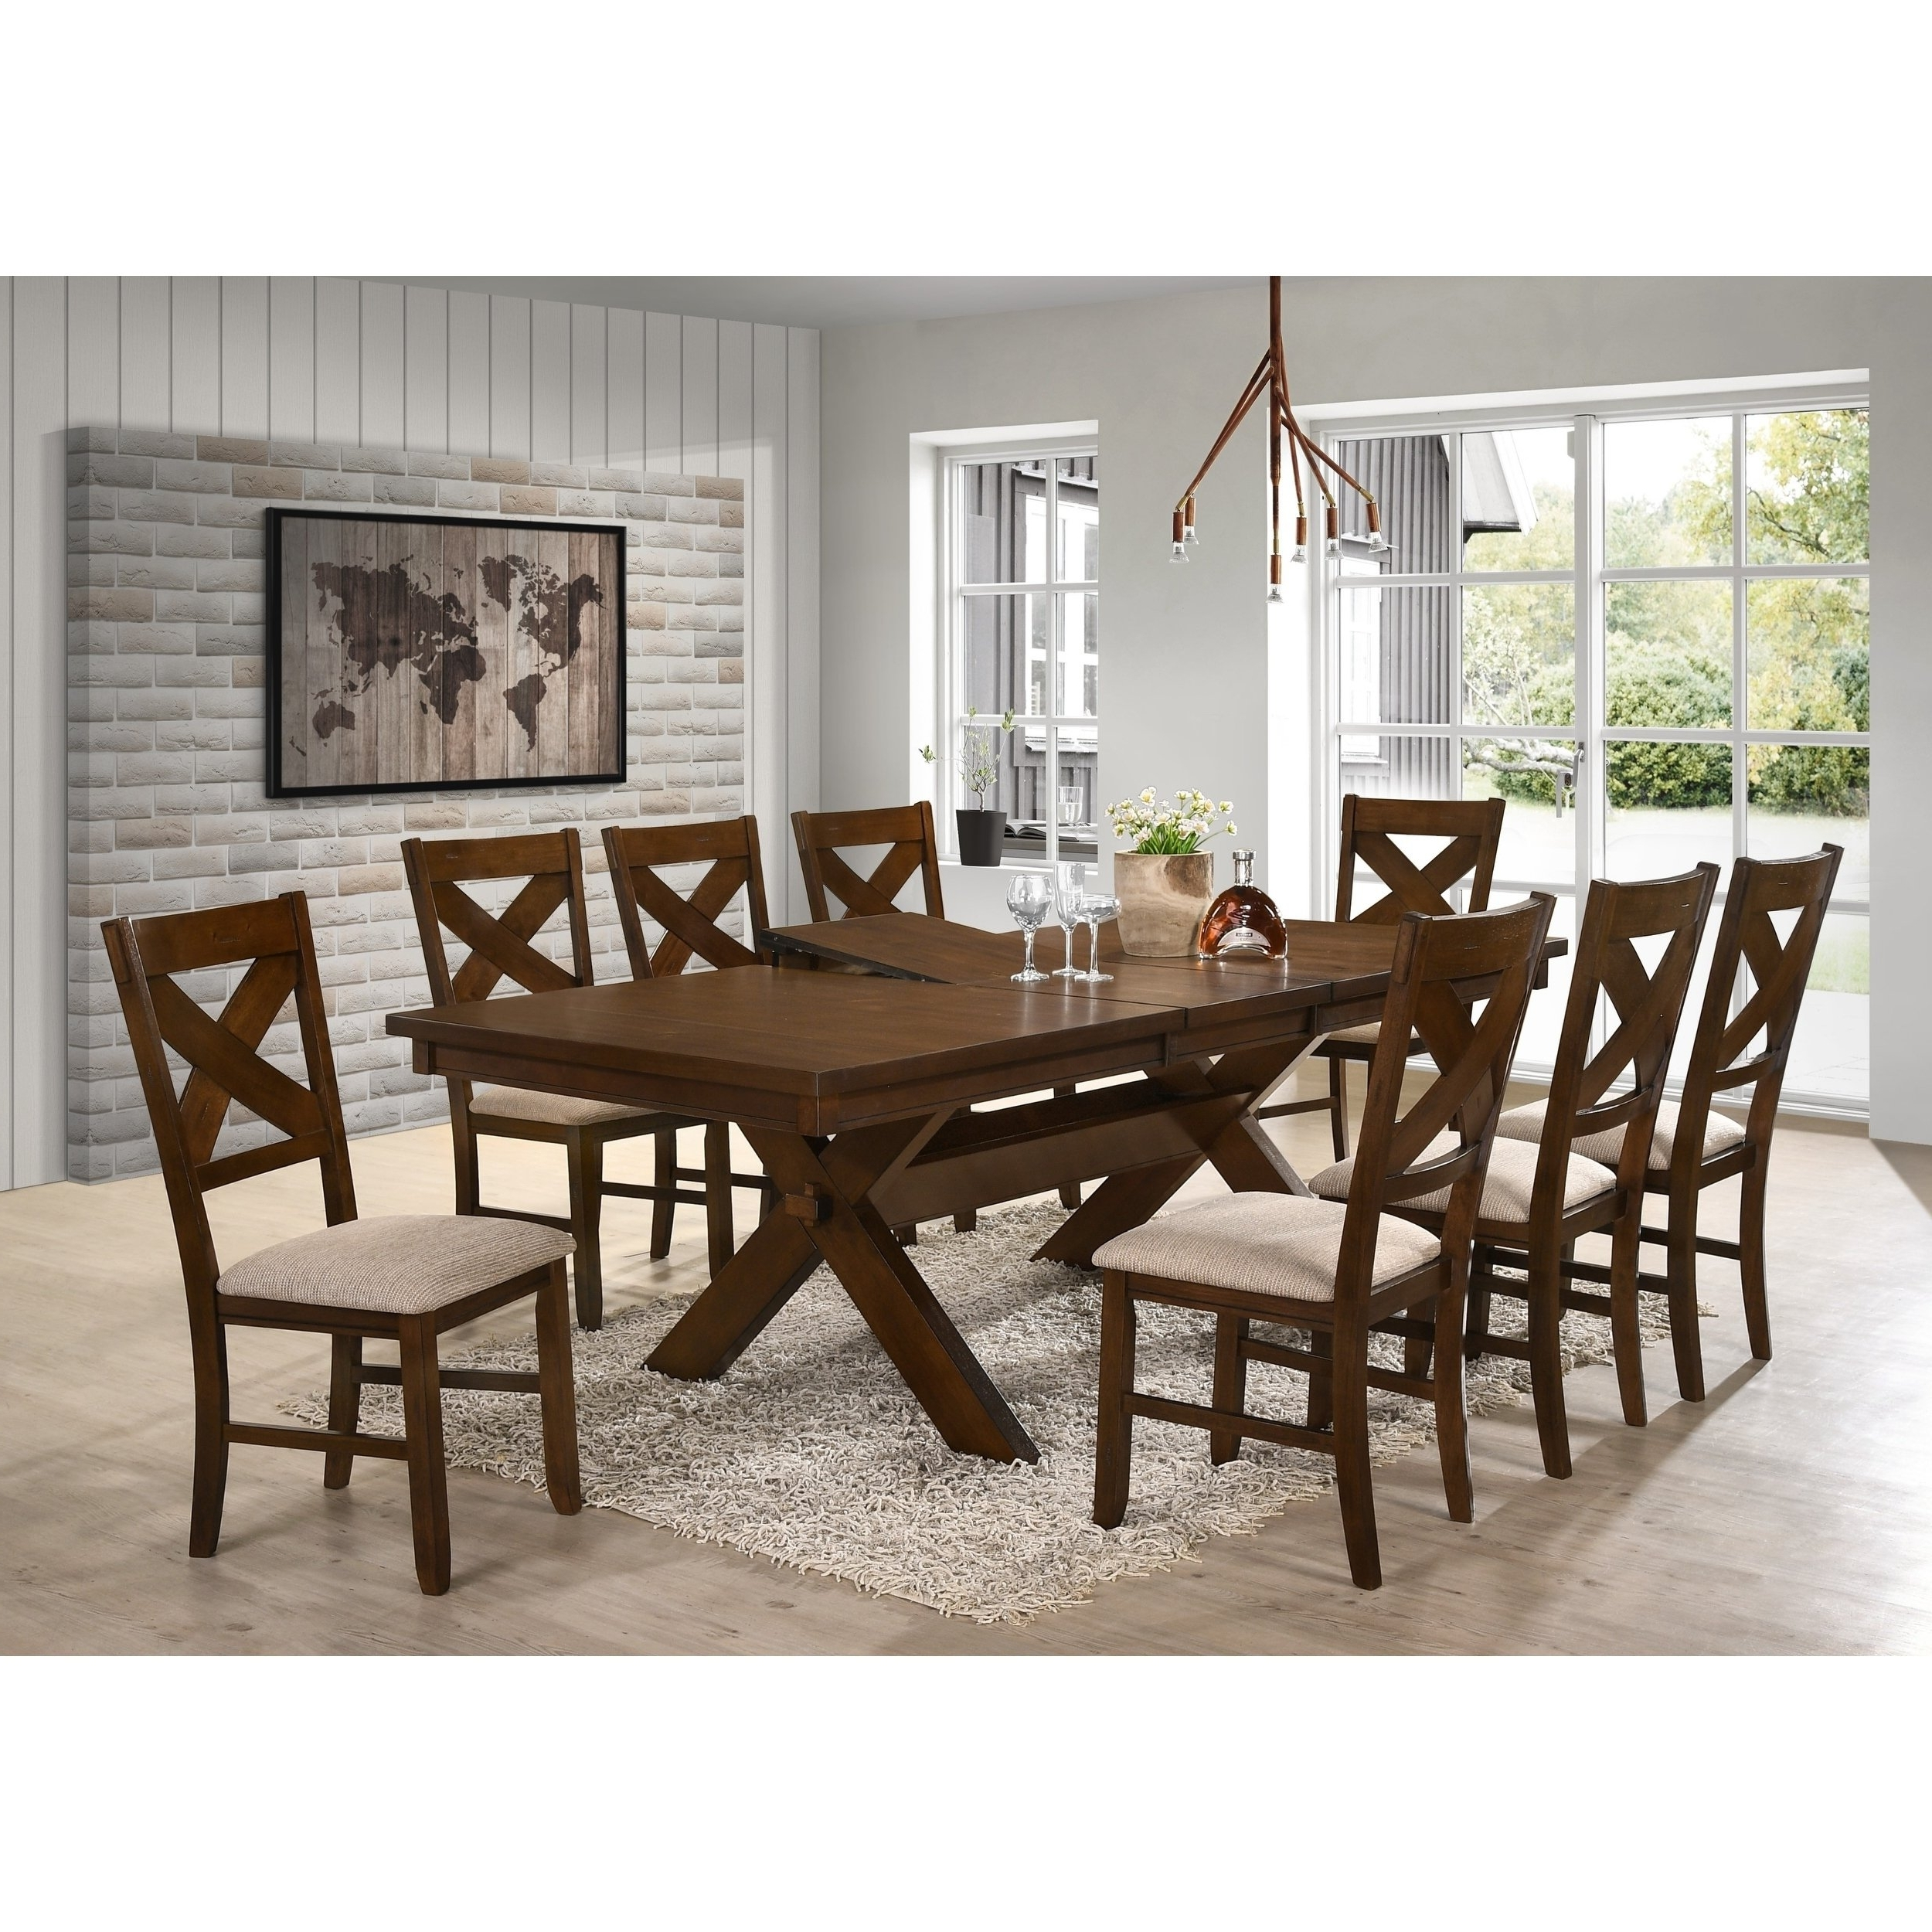 Popular 8 Chairs Dining Sets Within Shop 9 Piece Solid Wood Dining Set With Table And 8 Chairs – Free (Gallery 1 of 25)